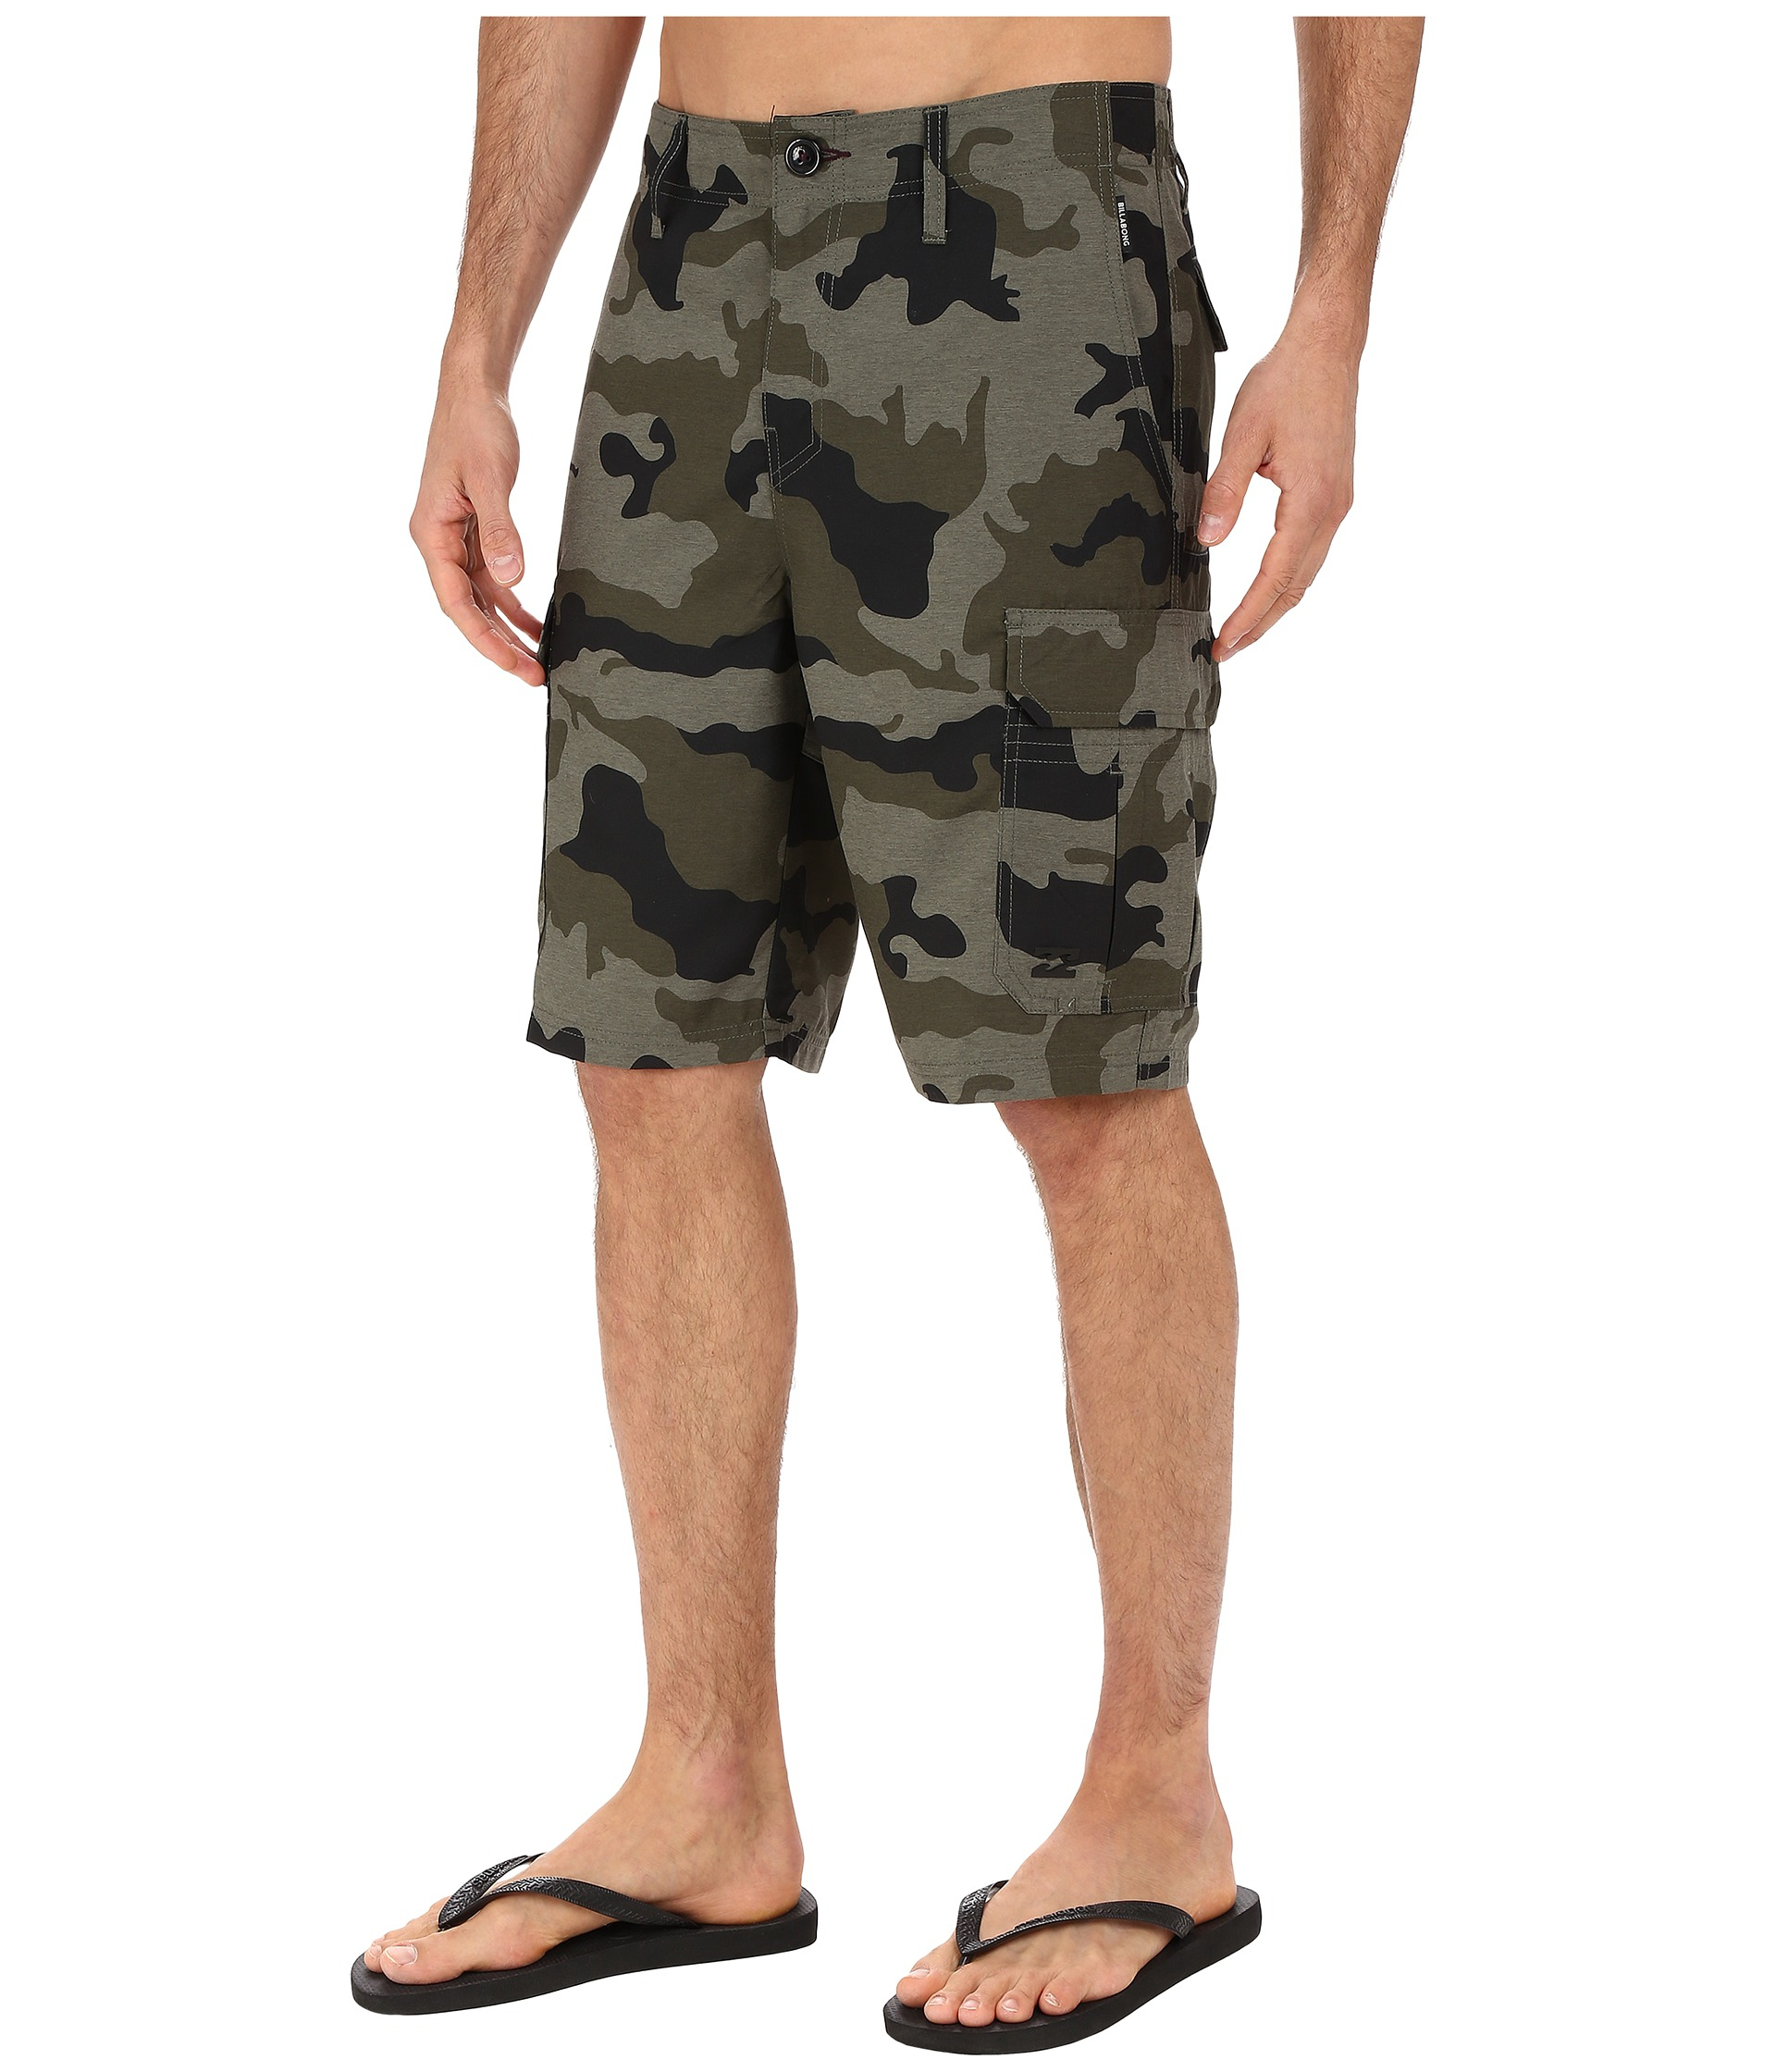 271045ec90 Billabong Scheme Cargo Submersible Shorts in Green for Men - Lyst